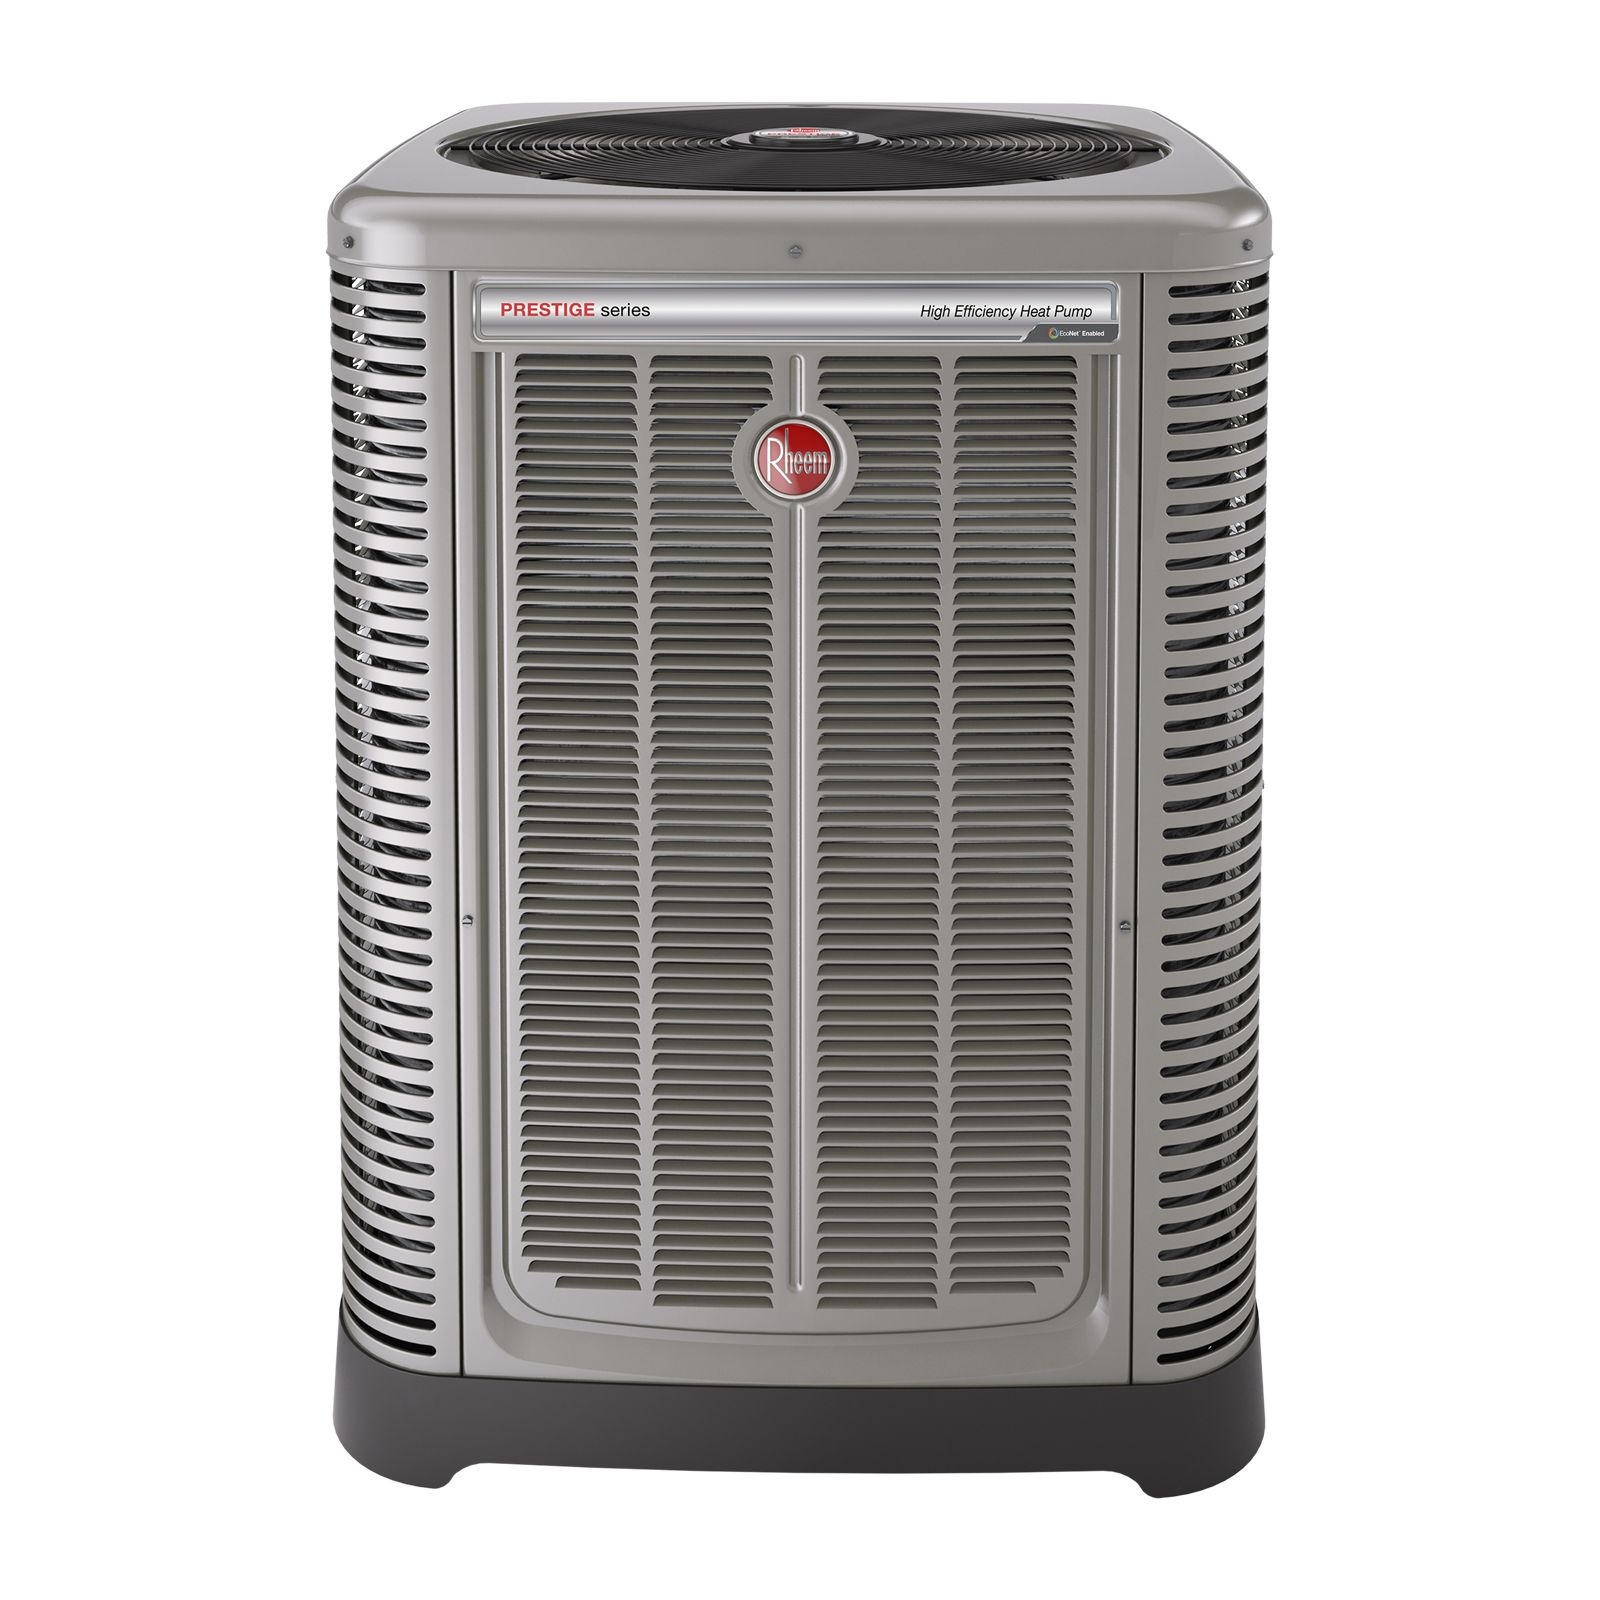 Rheem RP2036AJVCA -  Prestigea® Series 3 Ton, 20 SEER, EcoNet Enabled, Inverter Driven, Variable Speed Heat Pump